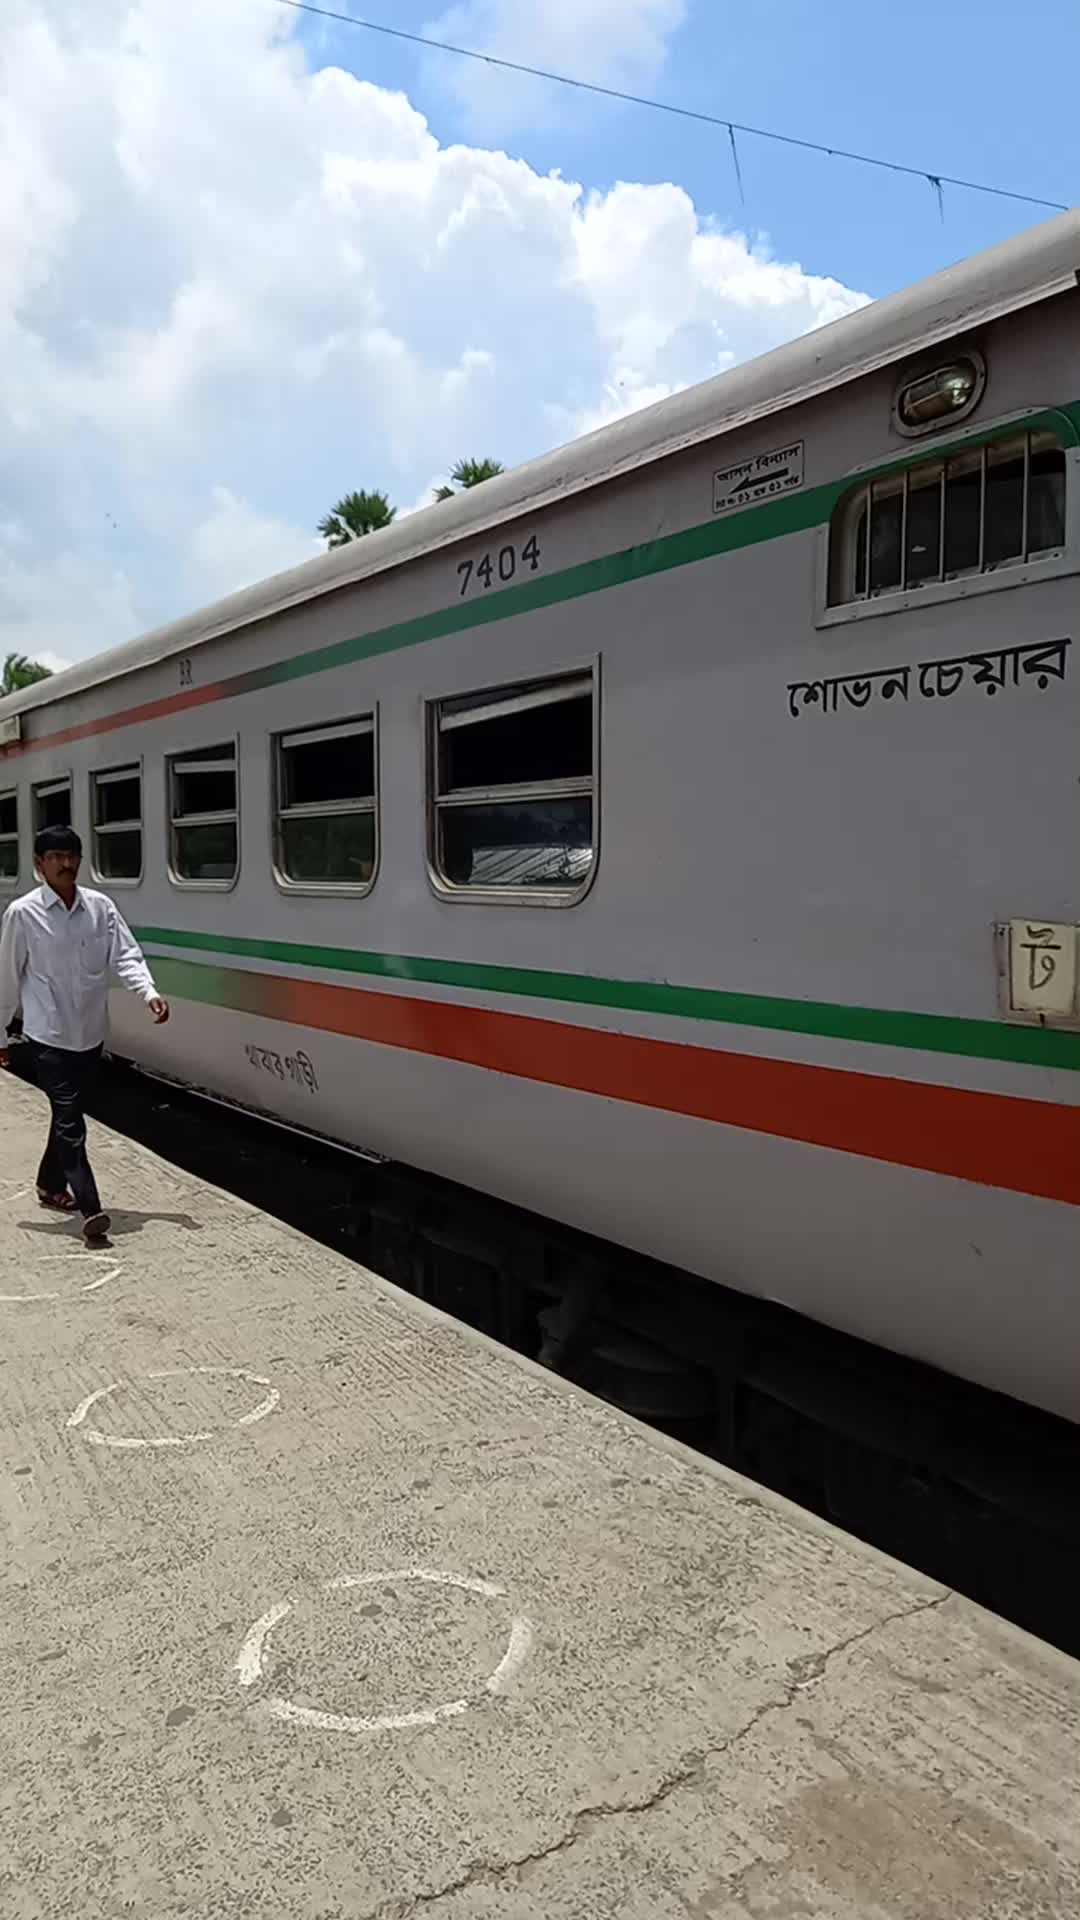 You must have liked to be shown a video during Bangladesh Jessore railway station.